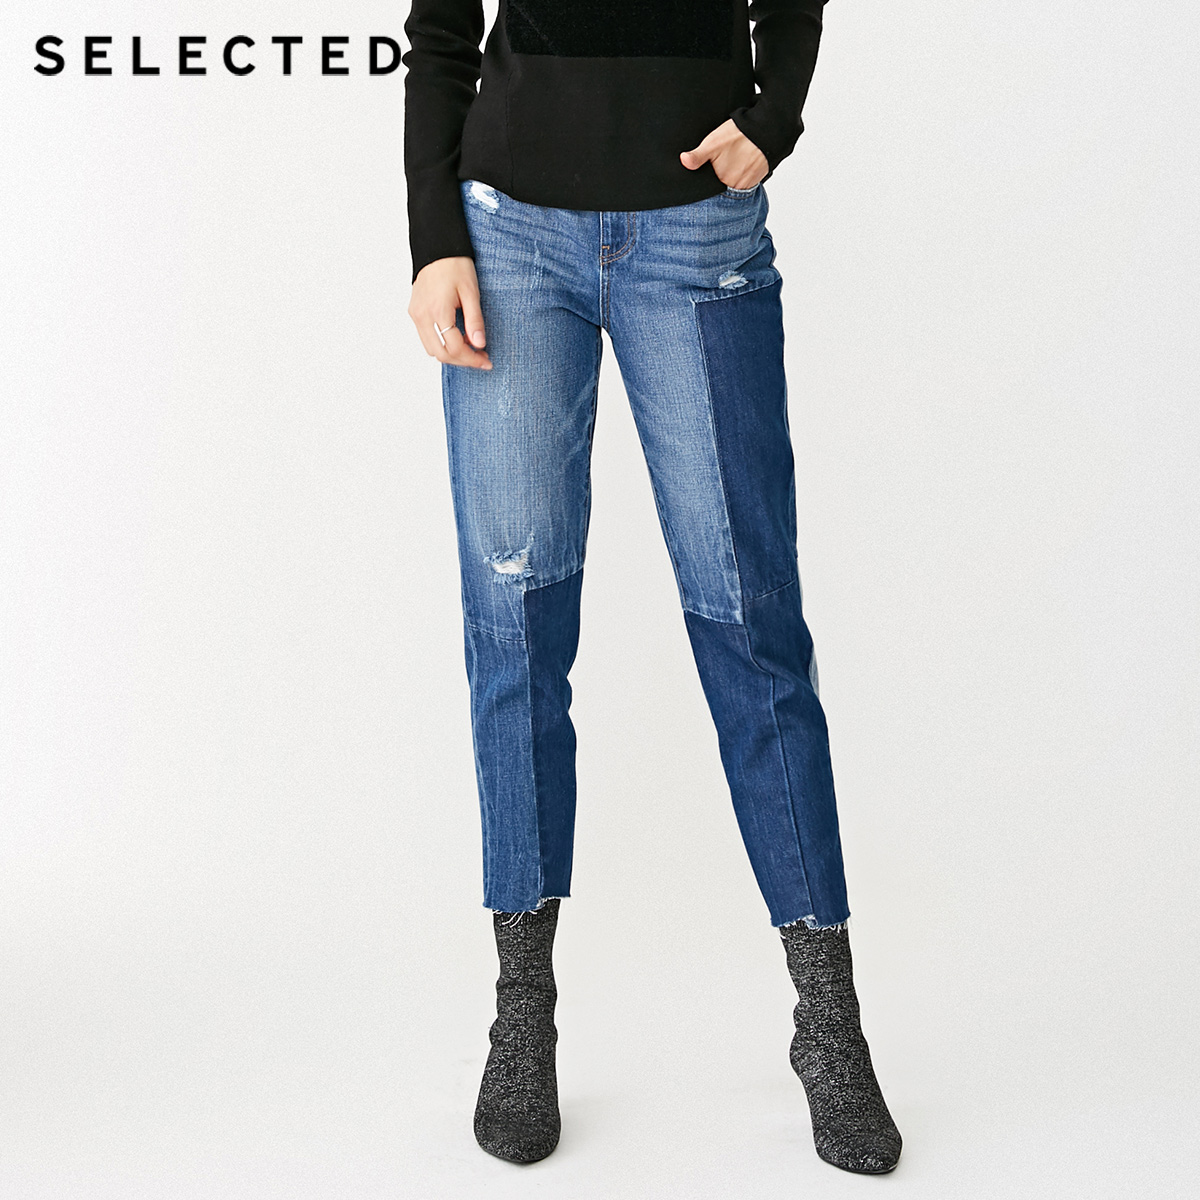 SELECTED Women's 100% Cotton Spliced Rips Crop Jeans C|418432516